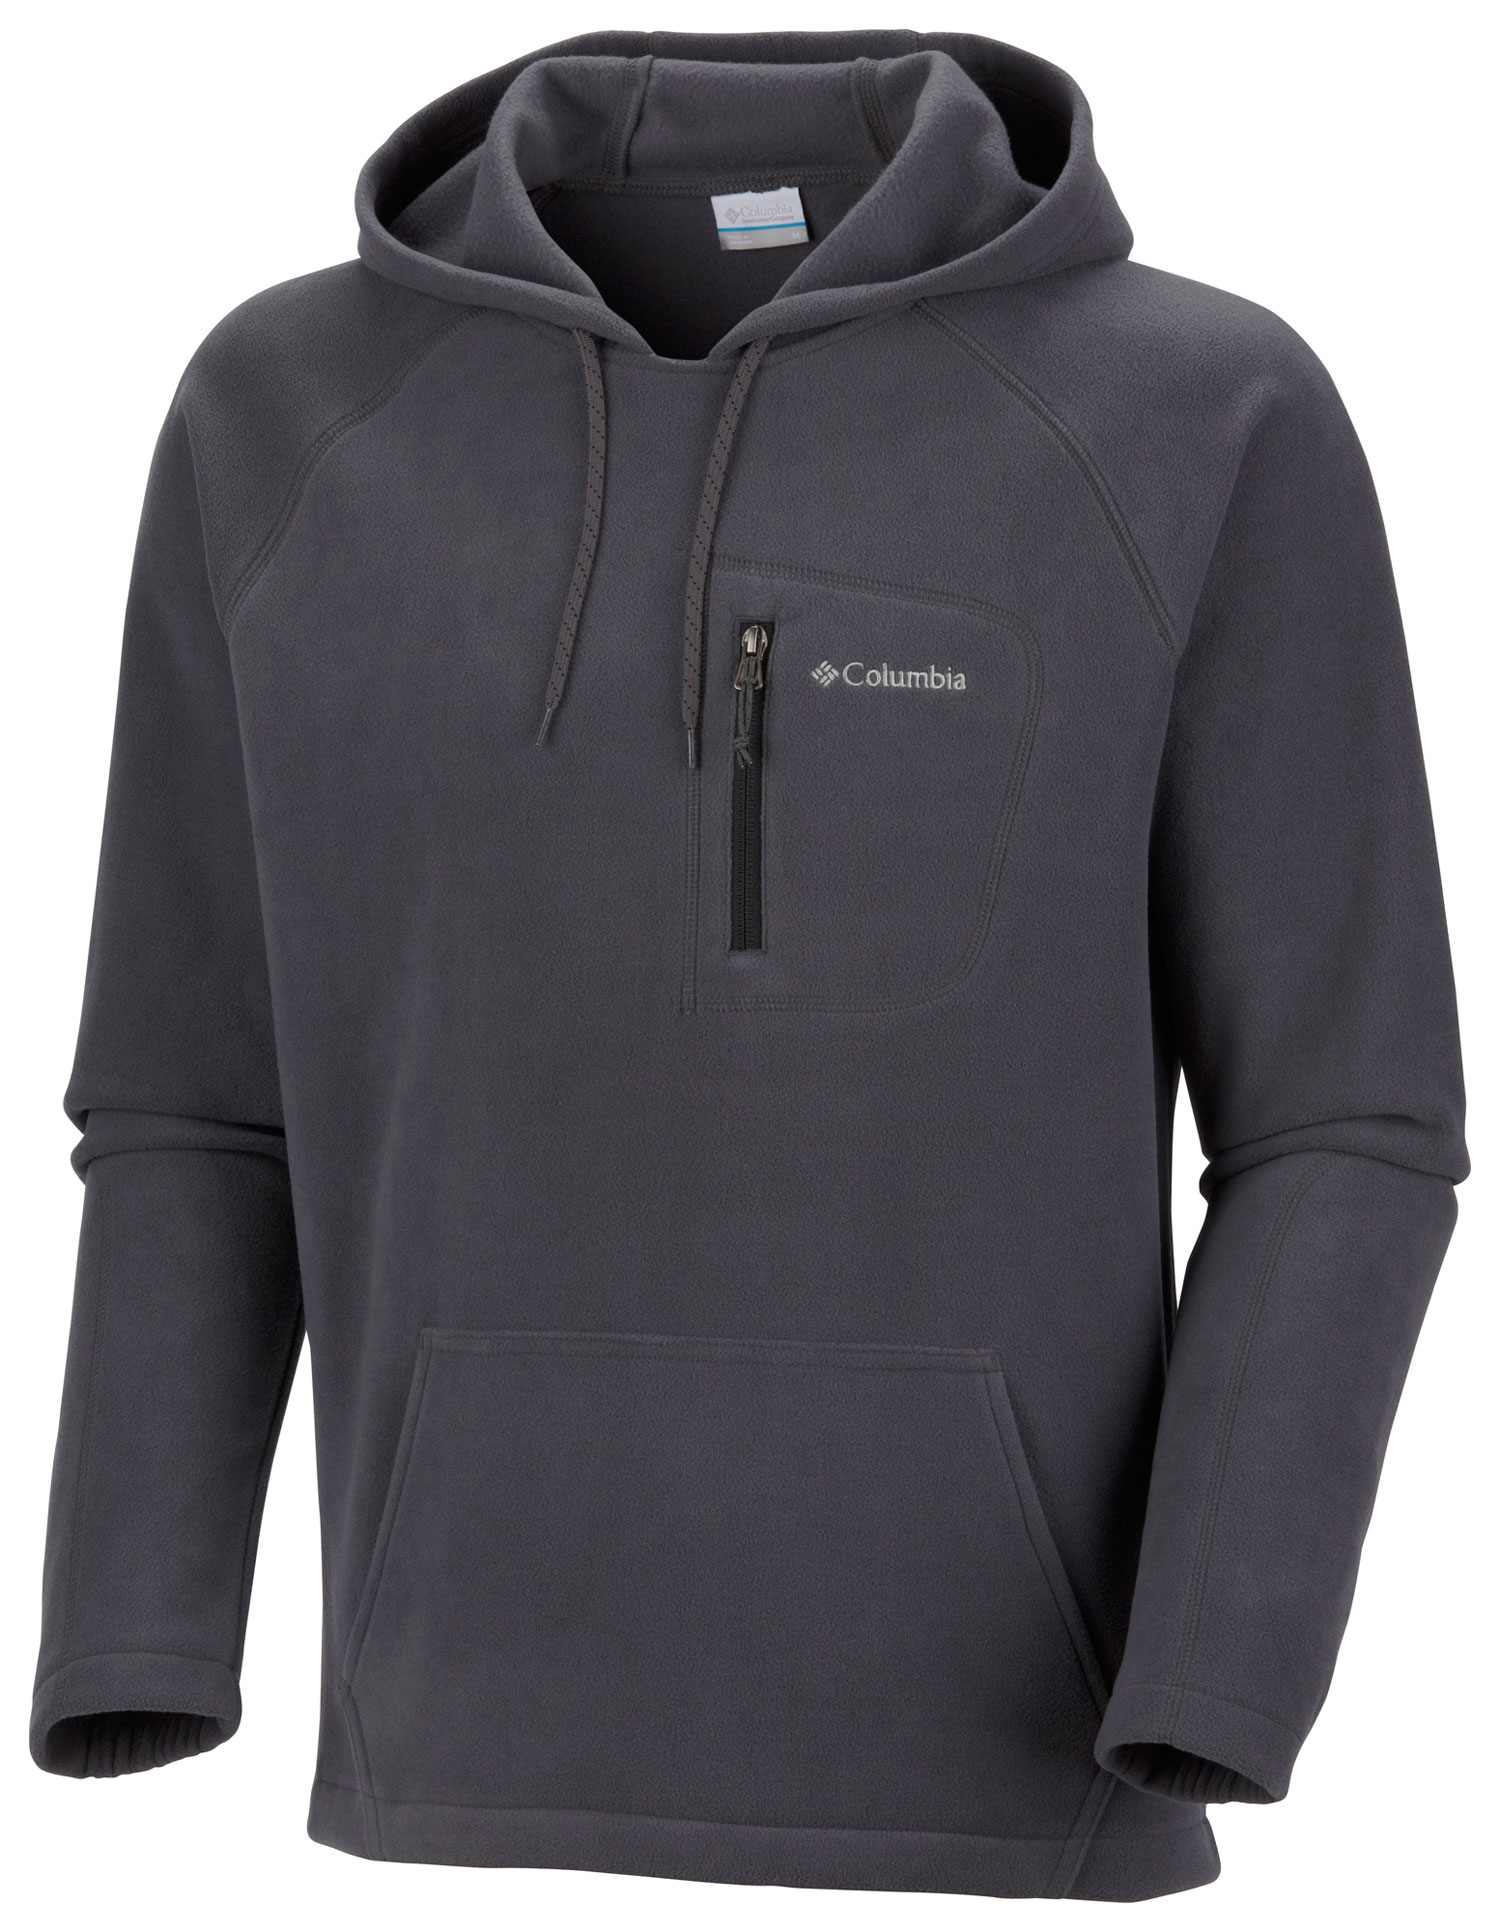 Key Features of the Columbia Fast Trek Hoodies: FABRIC 100% polyester micro?eece 250g. FIT Modern Classic Zip-closed security pocket - $35.95